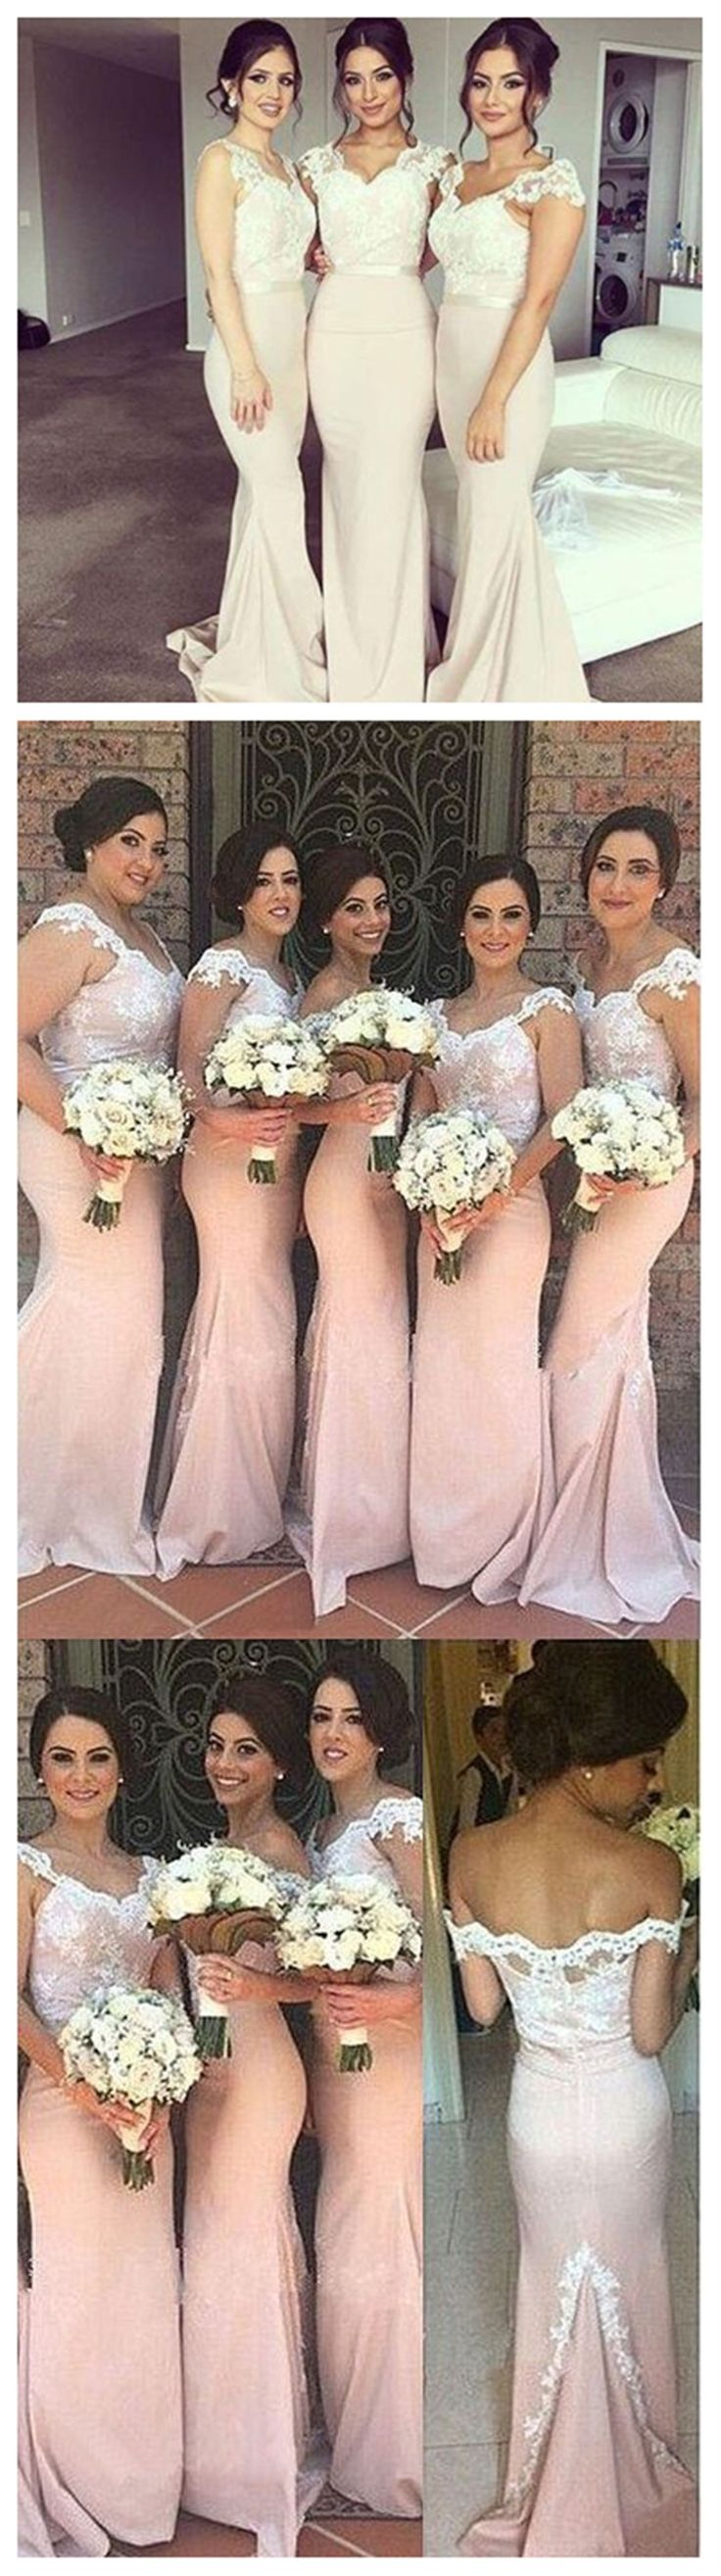 Wedding dress falls off pictures of hearts